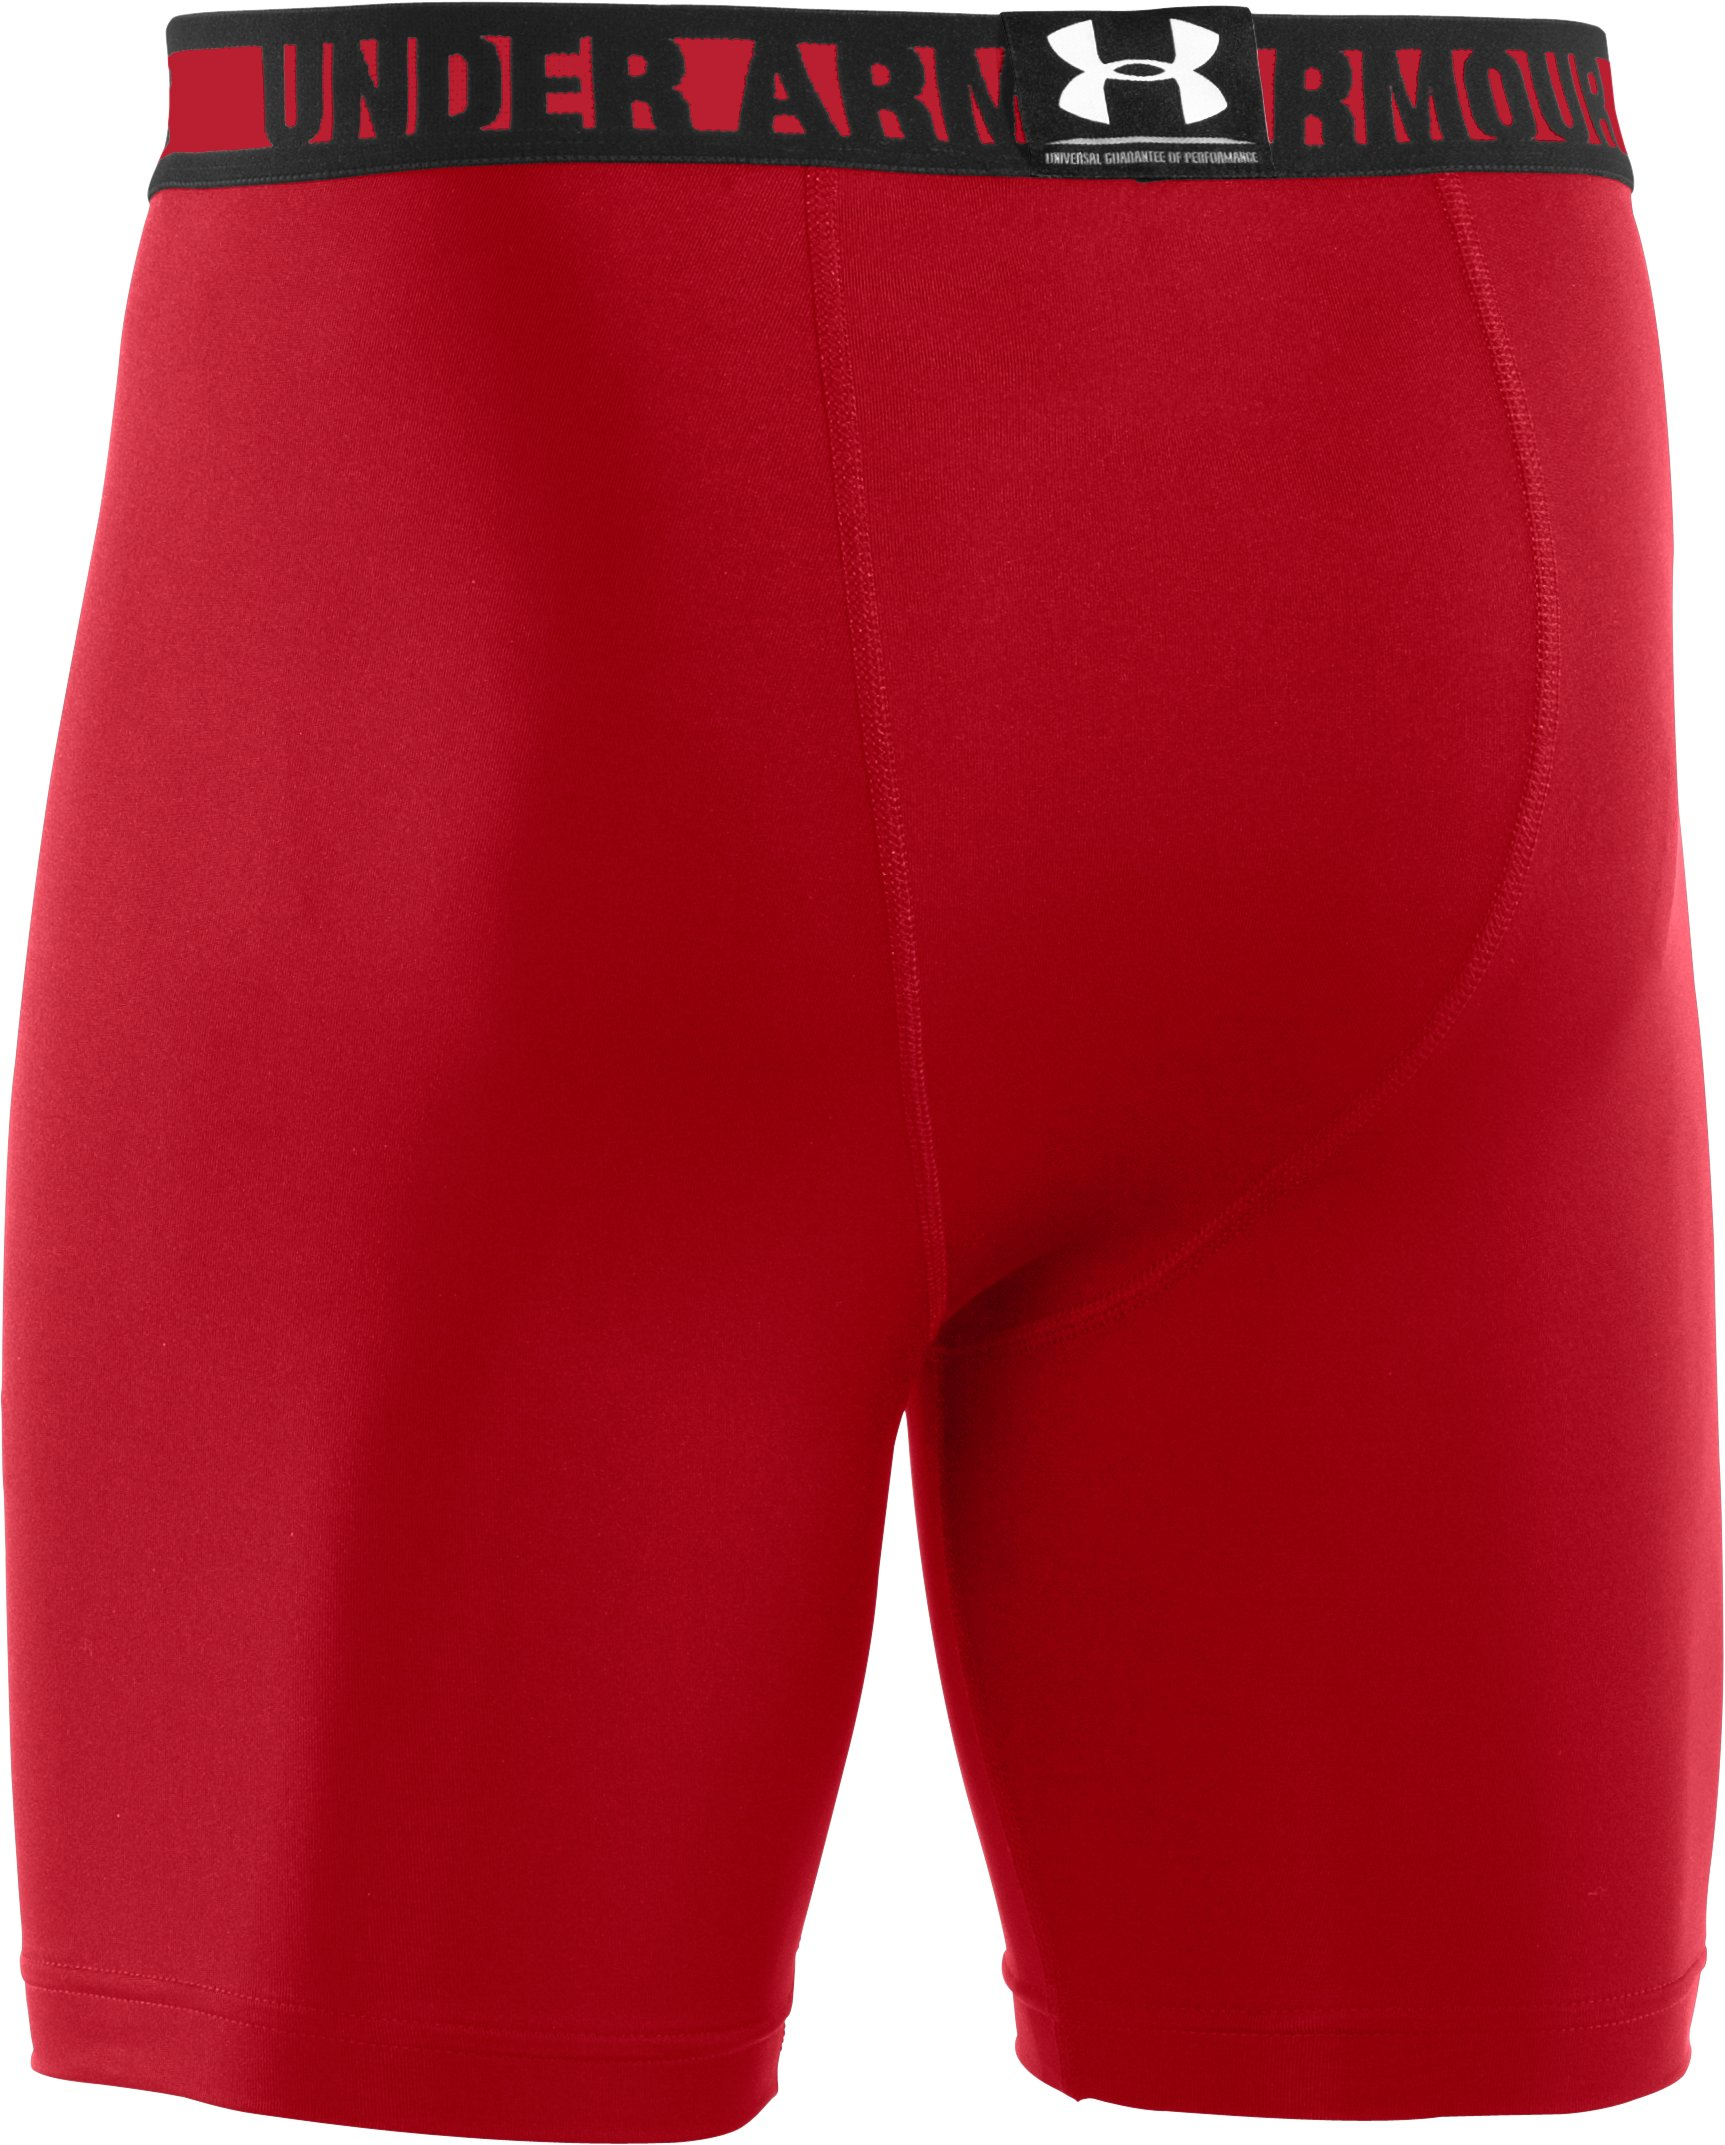 Men's HeatGear® Sonic Compression Shorts, Red, undefined